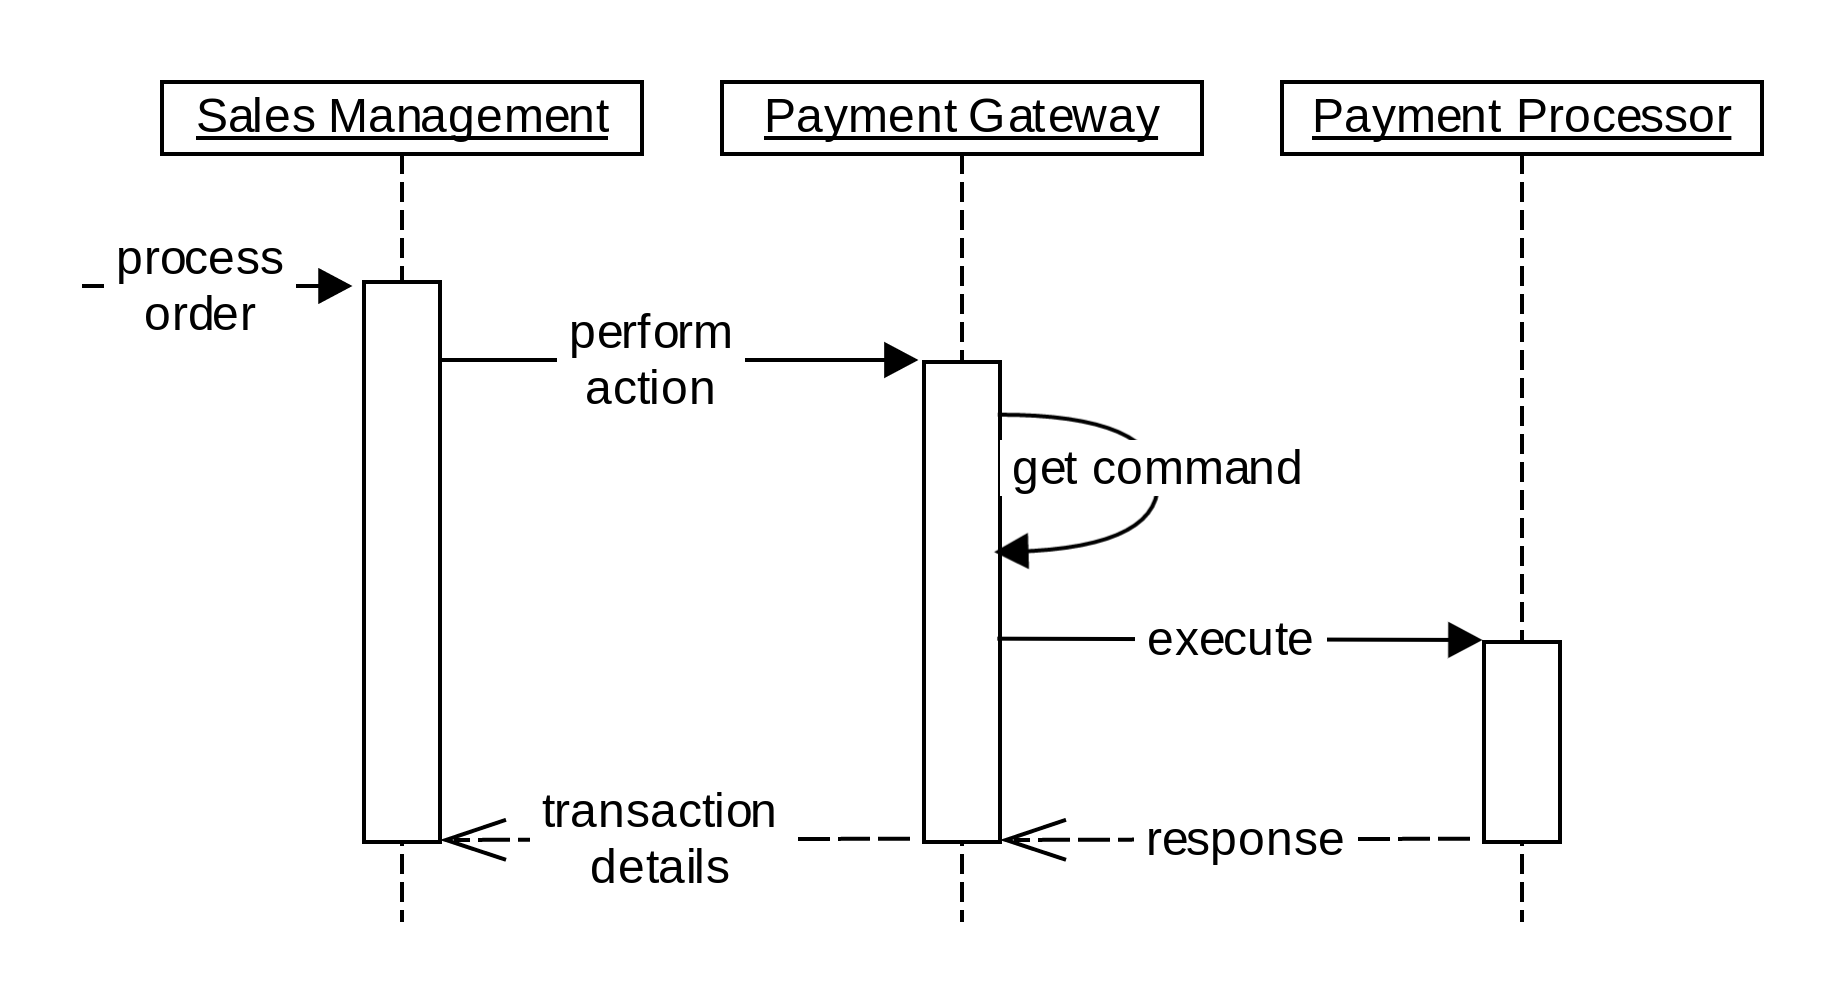 sequence diagram questions and answers trs cable magento2 how does the payment gateway works in magento 2